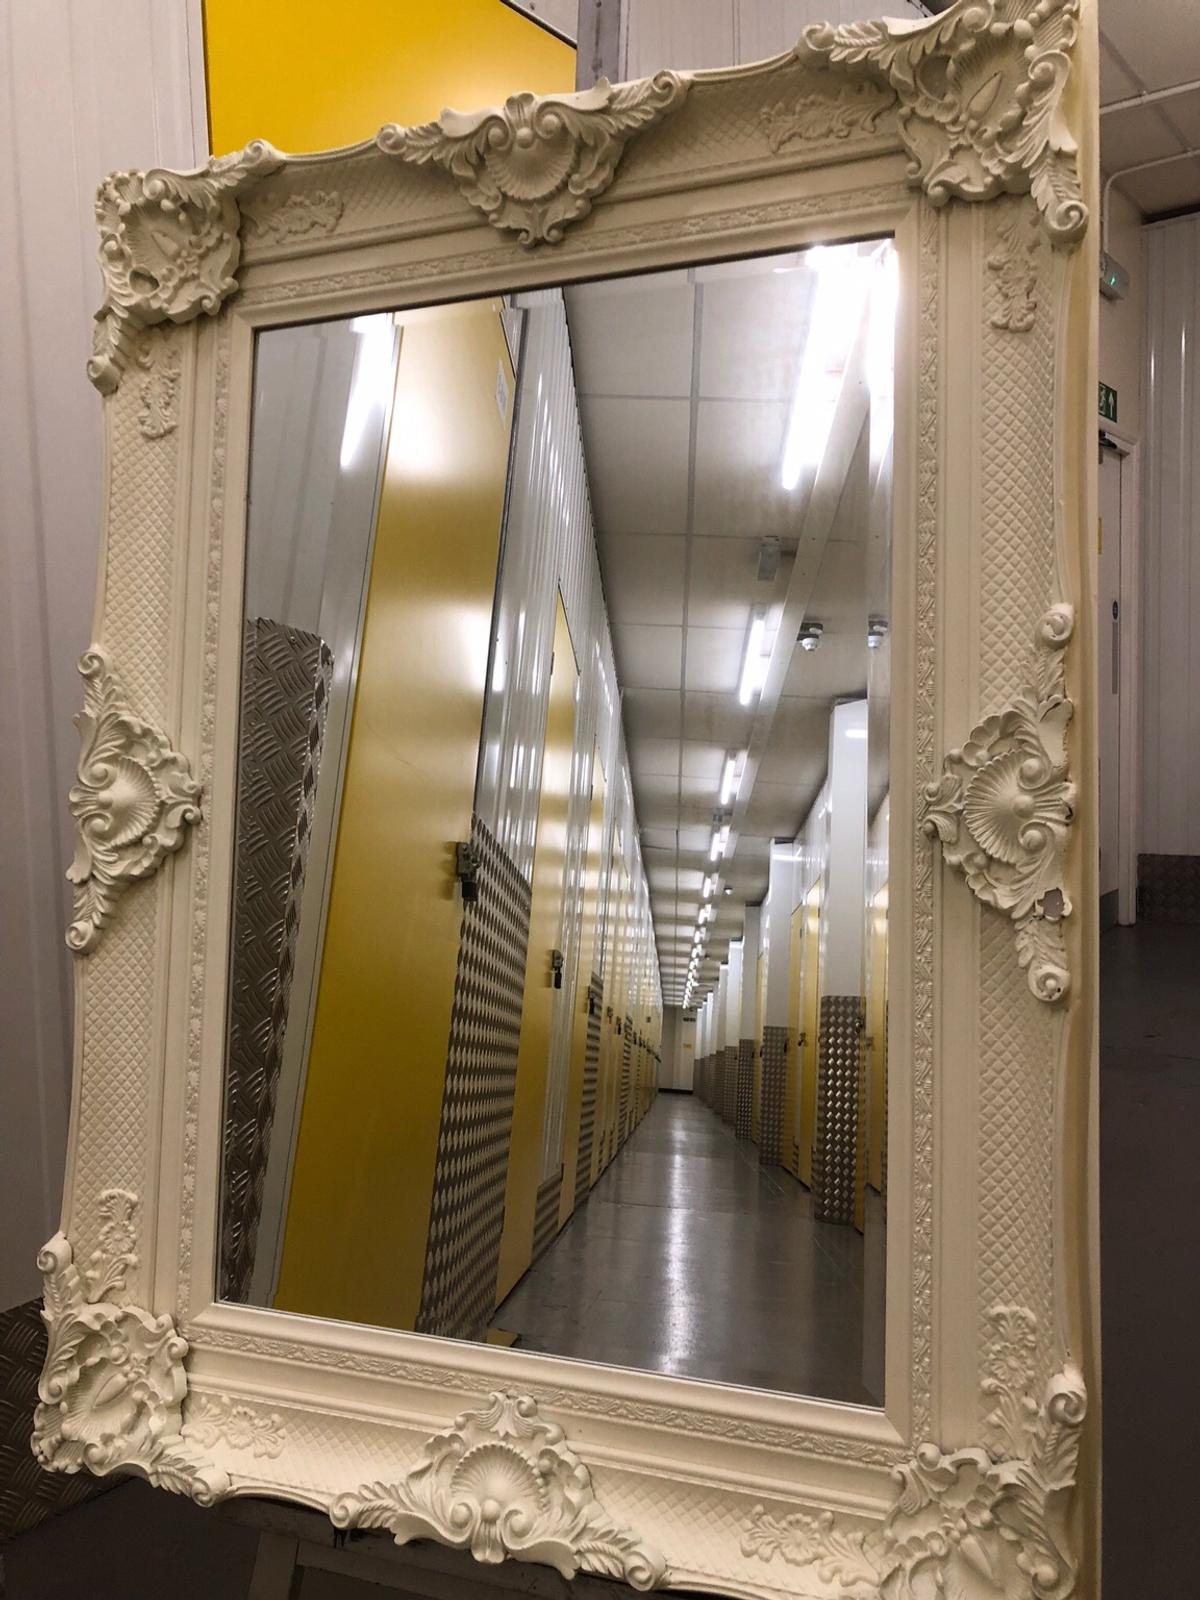 Large Ornate White Framed Wall Mirror In Tw9 Thames For 89 00 For Sale Shpock